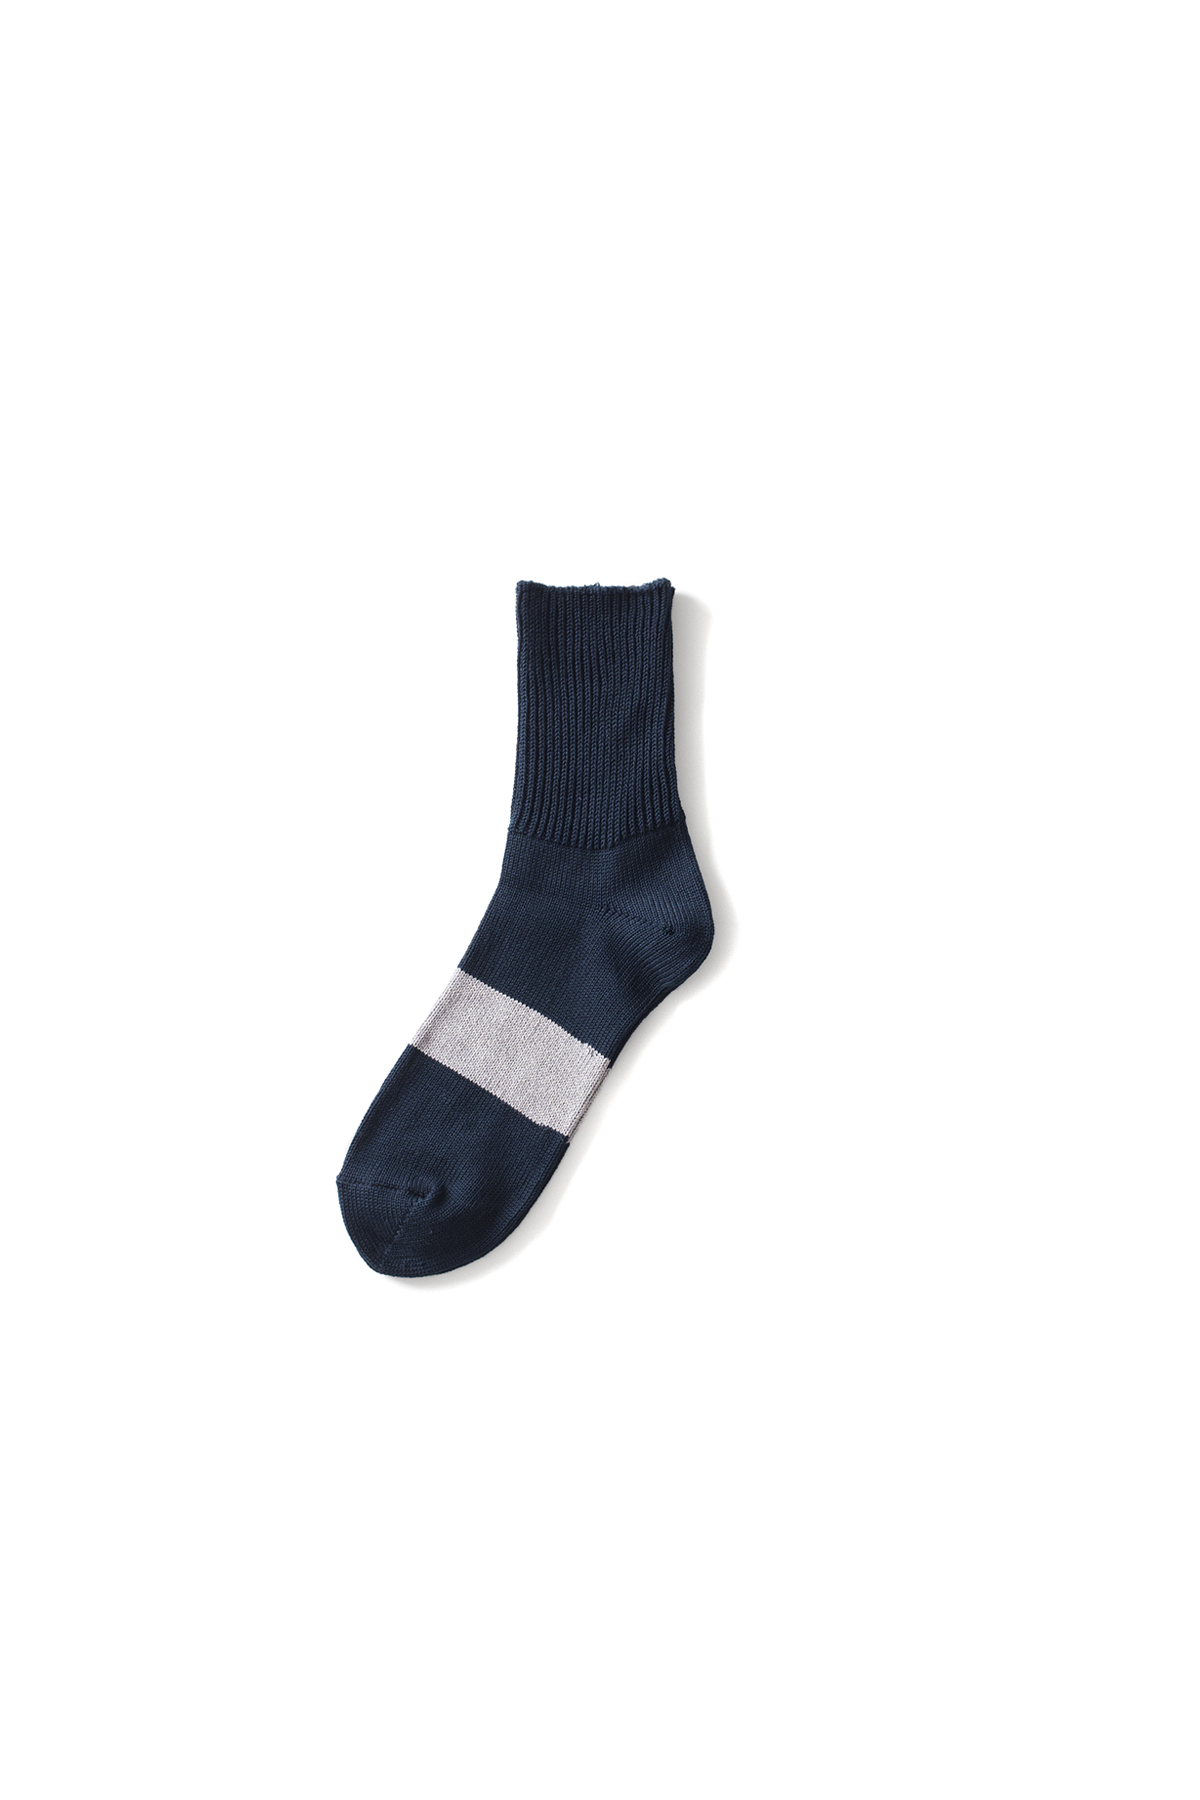 Roster Sox : Merceri Socks (Navy)